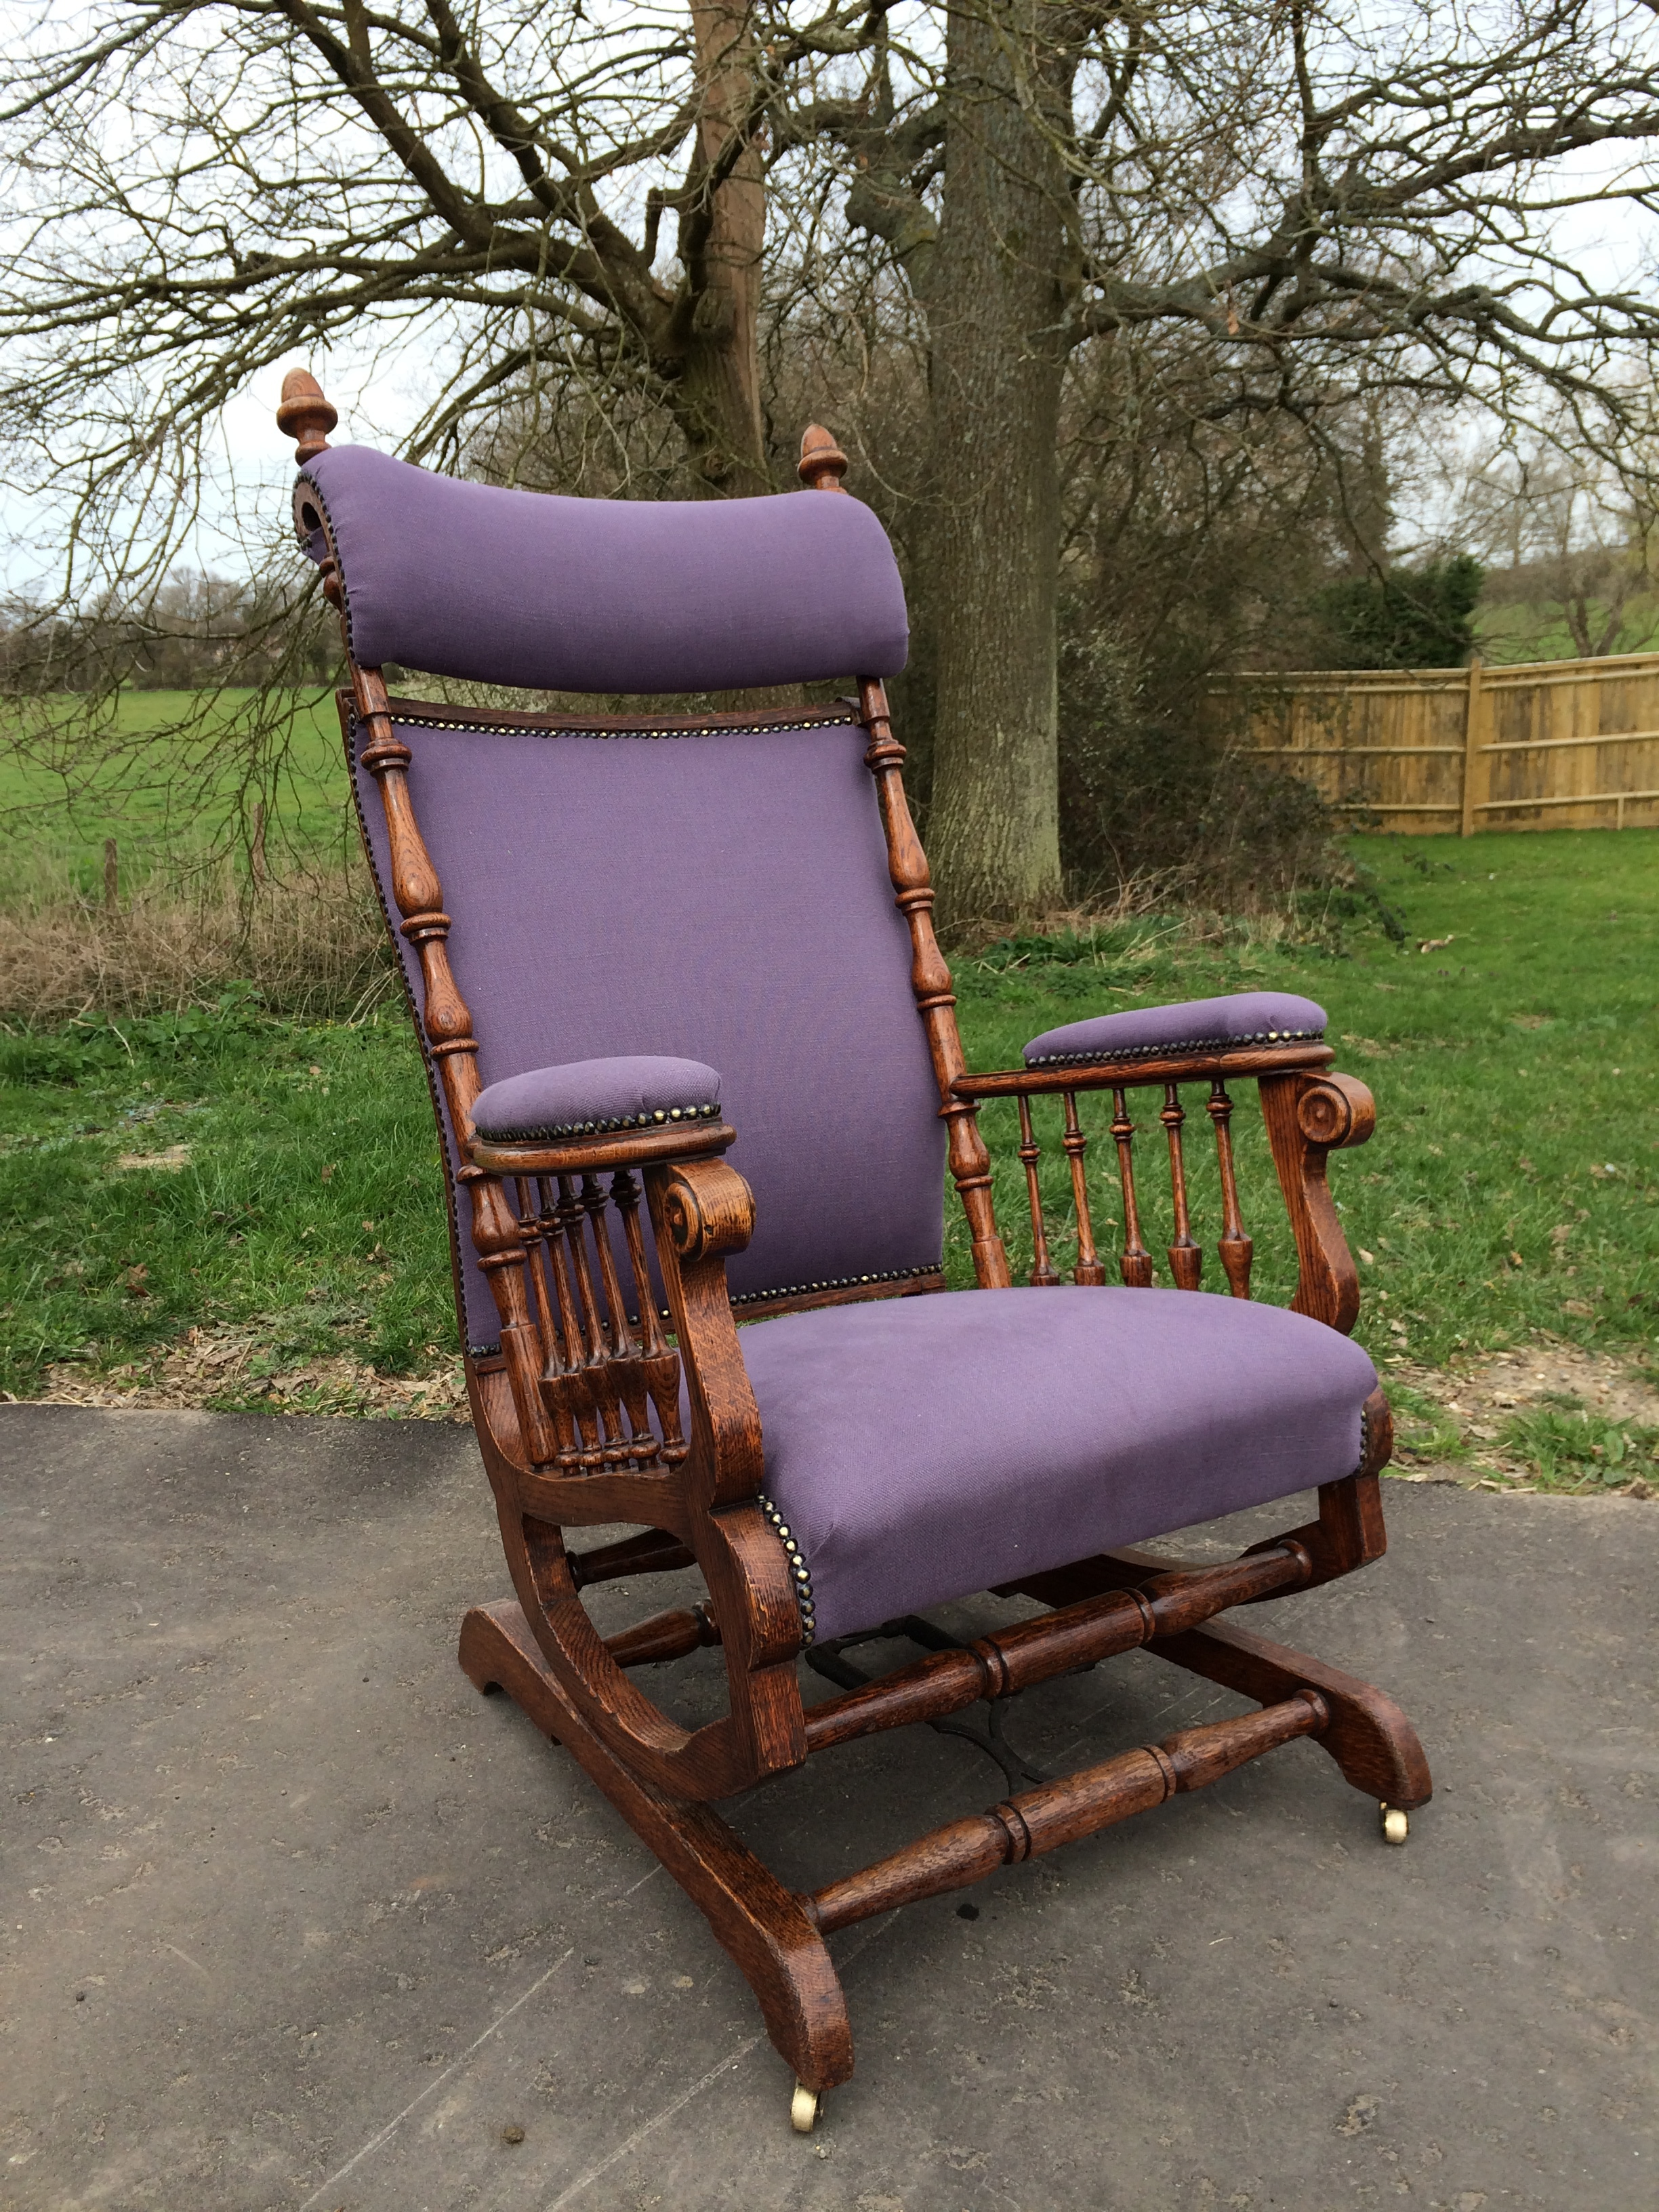 Transformed - This wonderful rocking chair came to me in a bit of a state. I removed the upholstery, re glued every joint, repaired damaged polish and finally had it reupholstered.You can see the before images below.